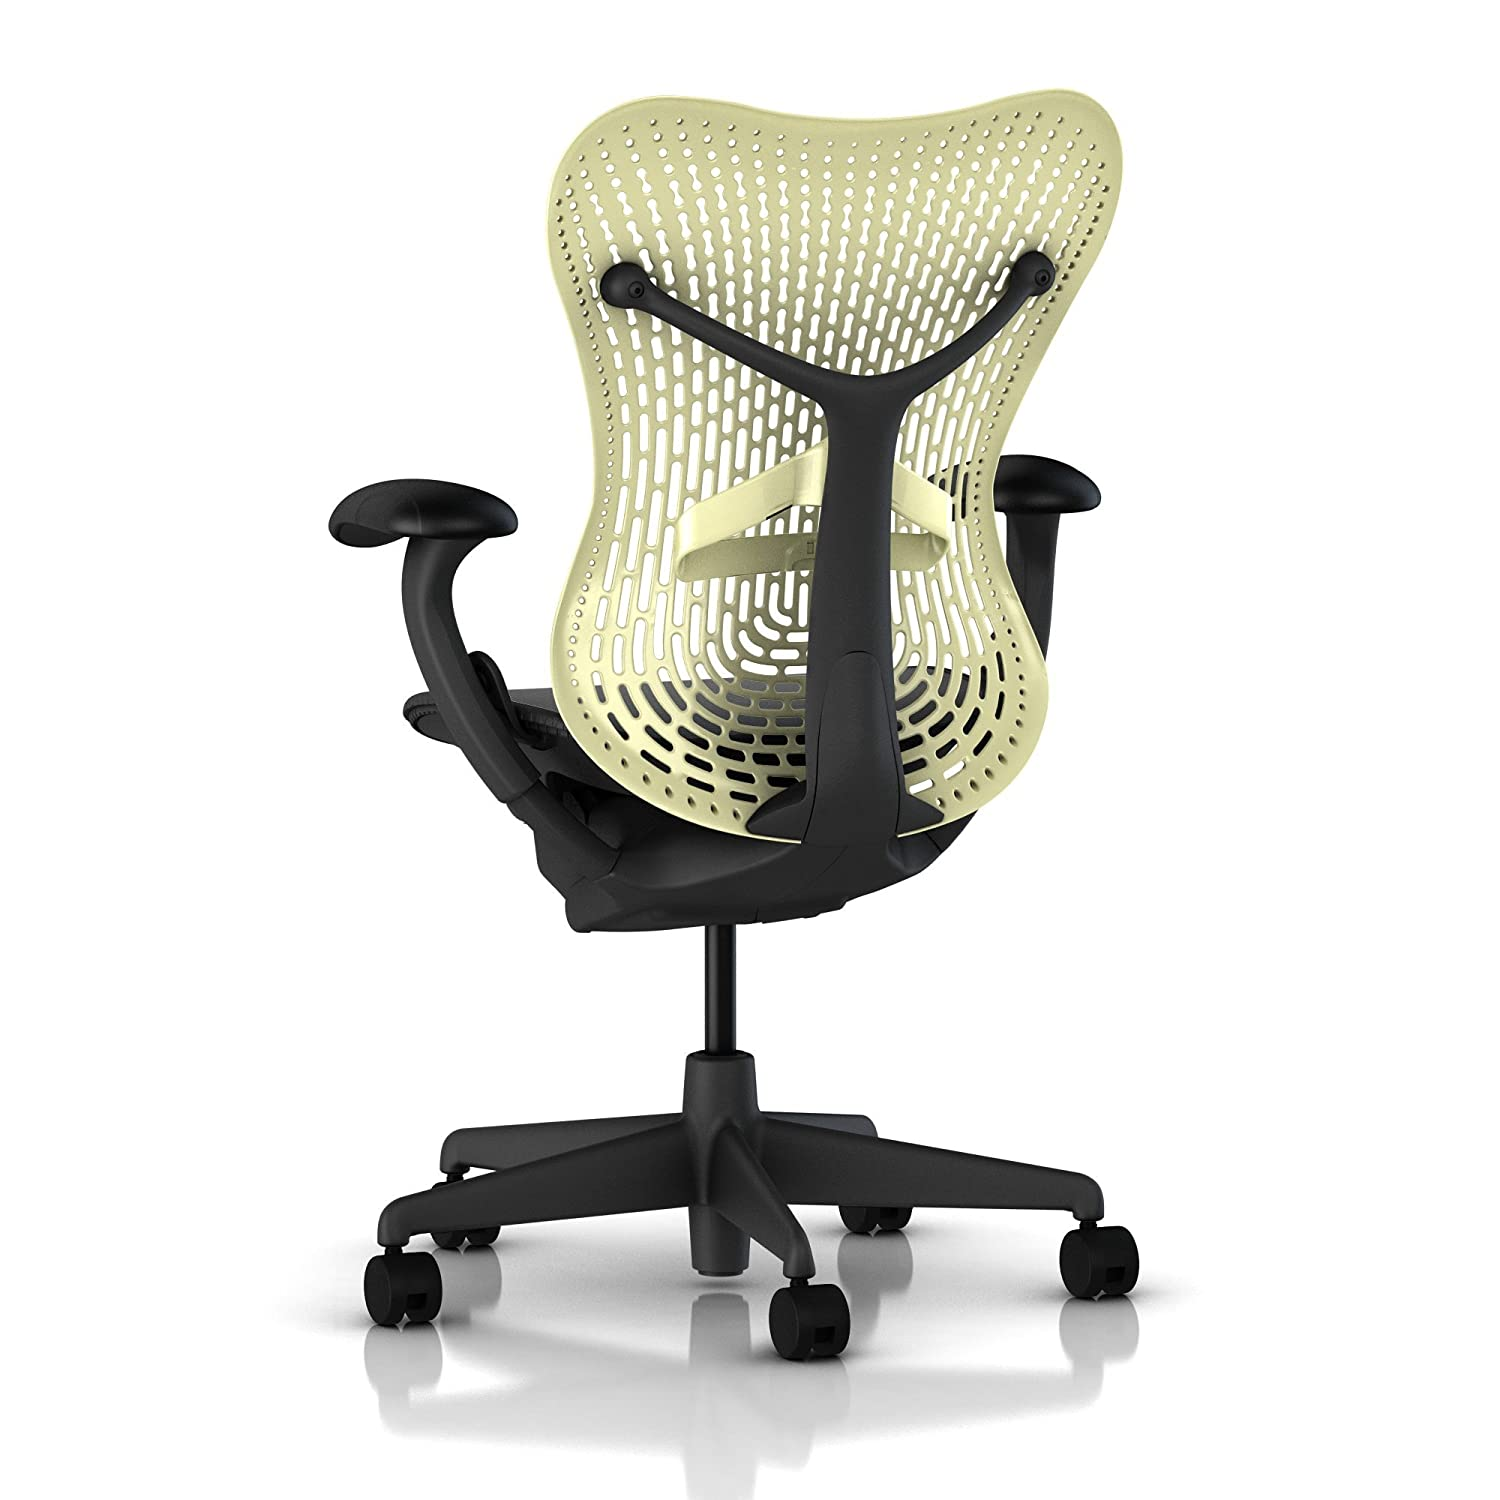 leap best office steelcase miller gaming embody chair herman watch ergonomic vs chairs review